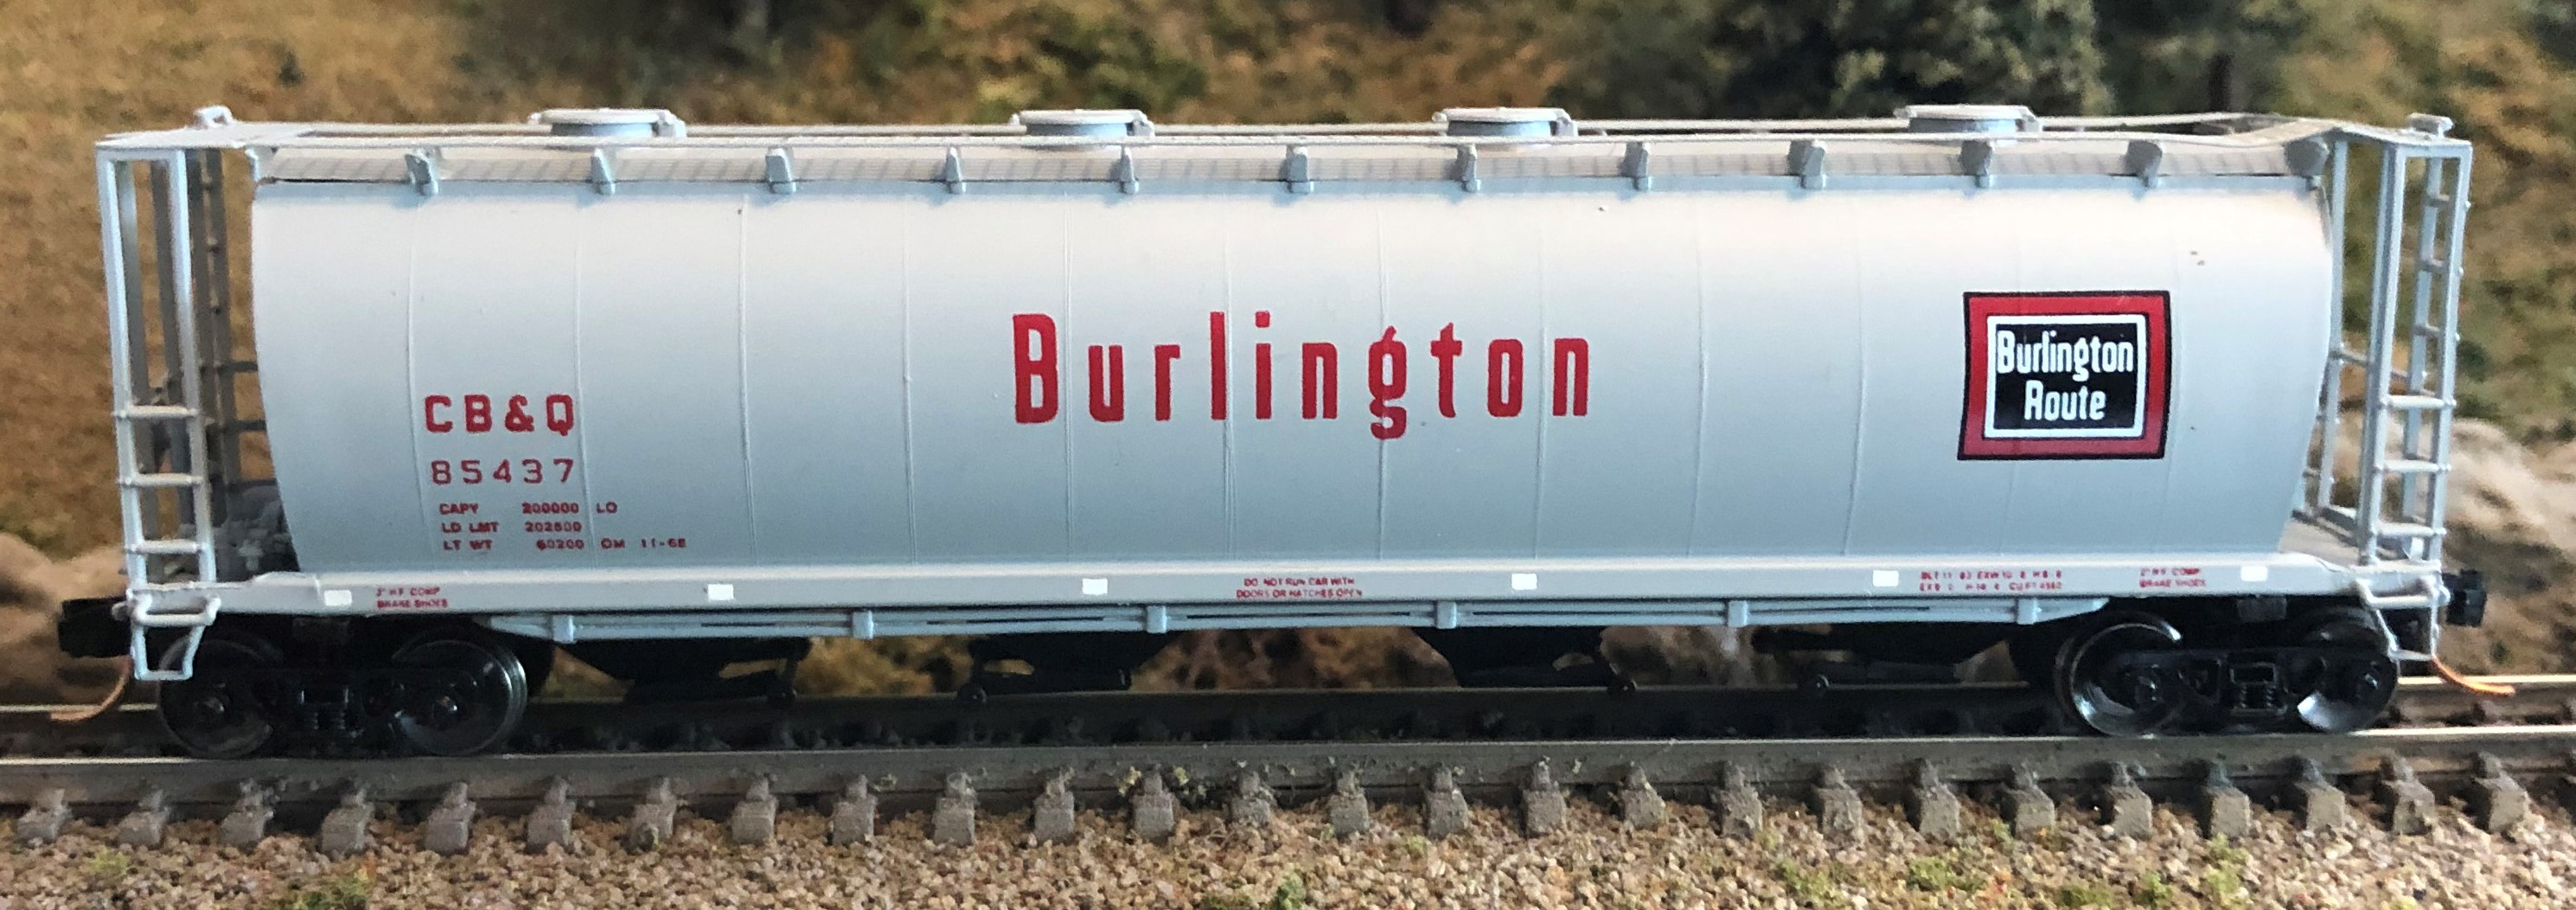 N Scale - InterMountain - 65216-21 - Covered Hopper, 4-Bay, Cylindrical - Burlington Route - 85437